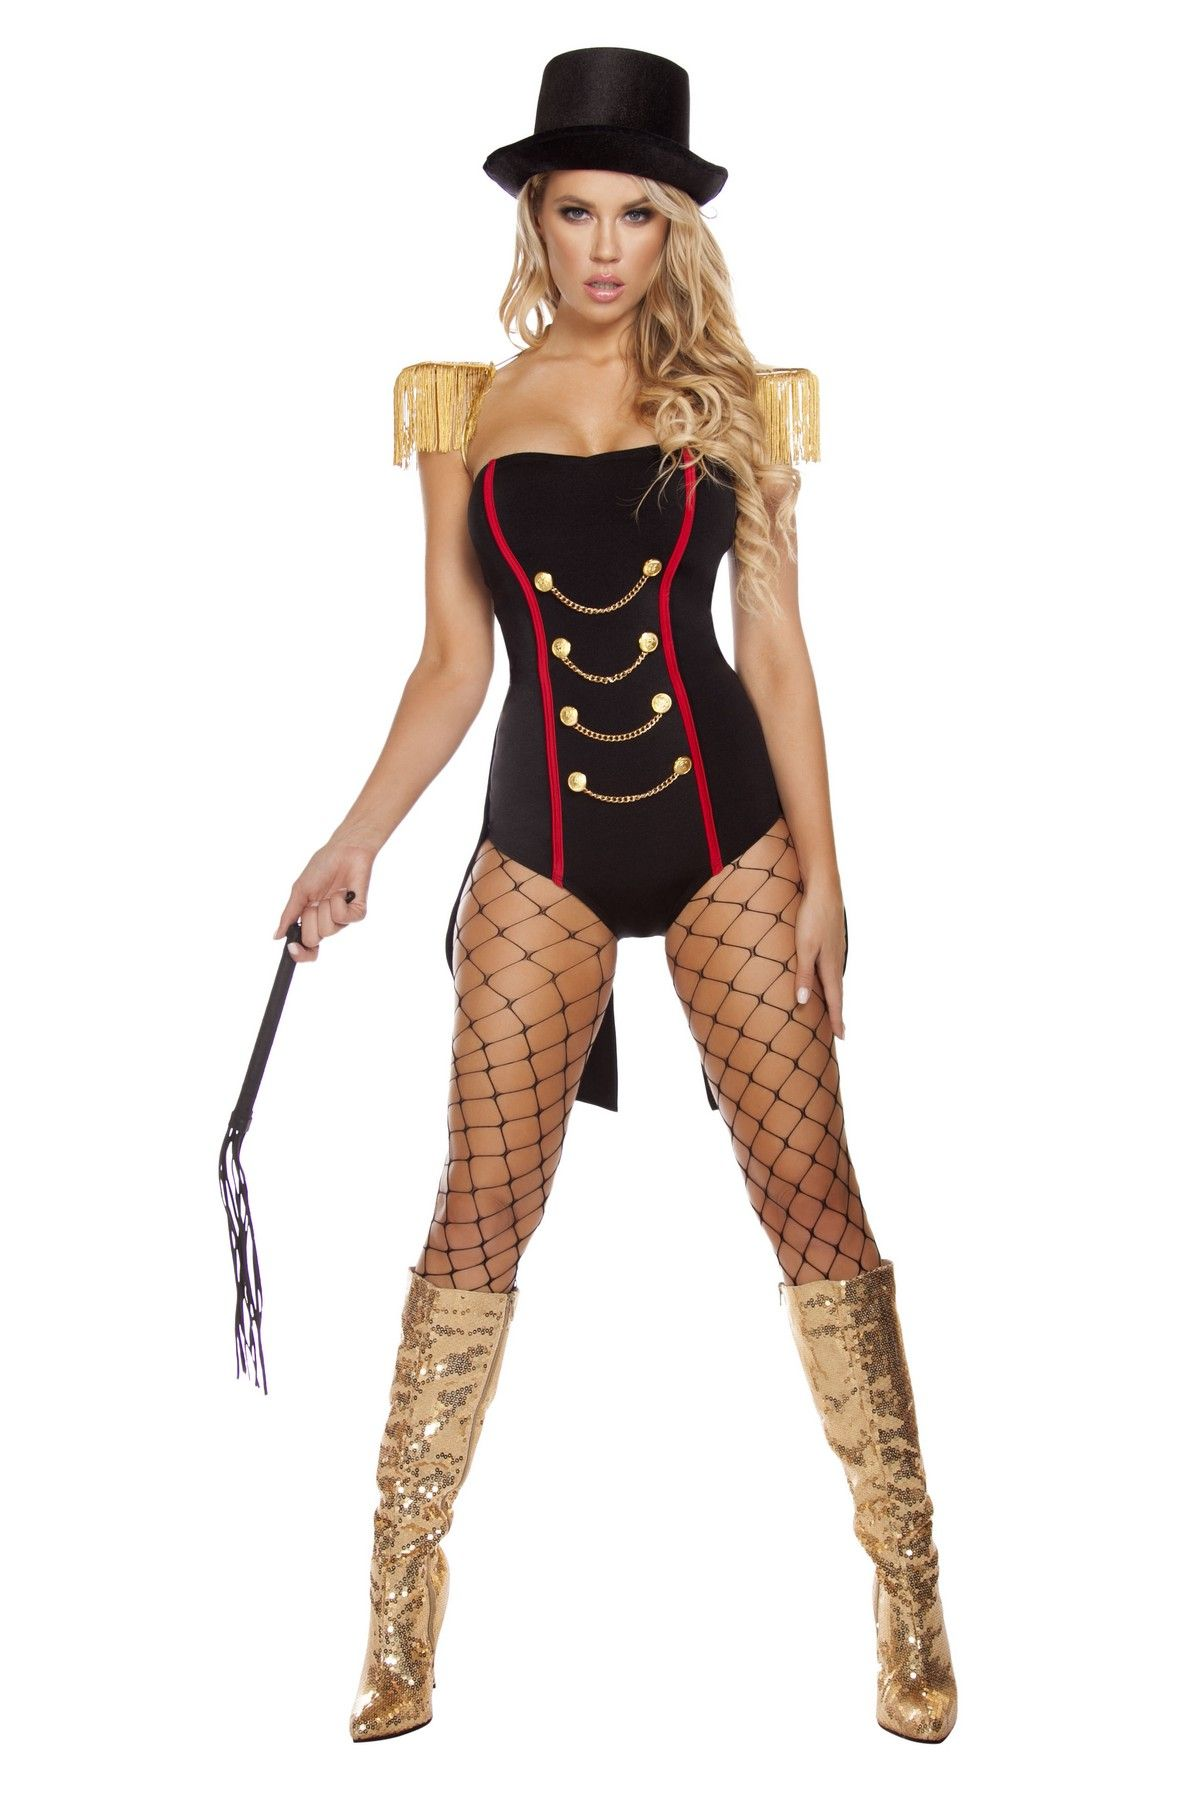 Naked adult halloween costumes, fucking lil pussy